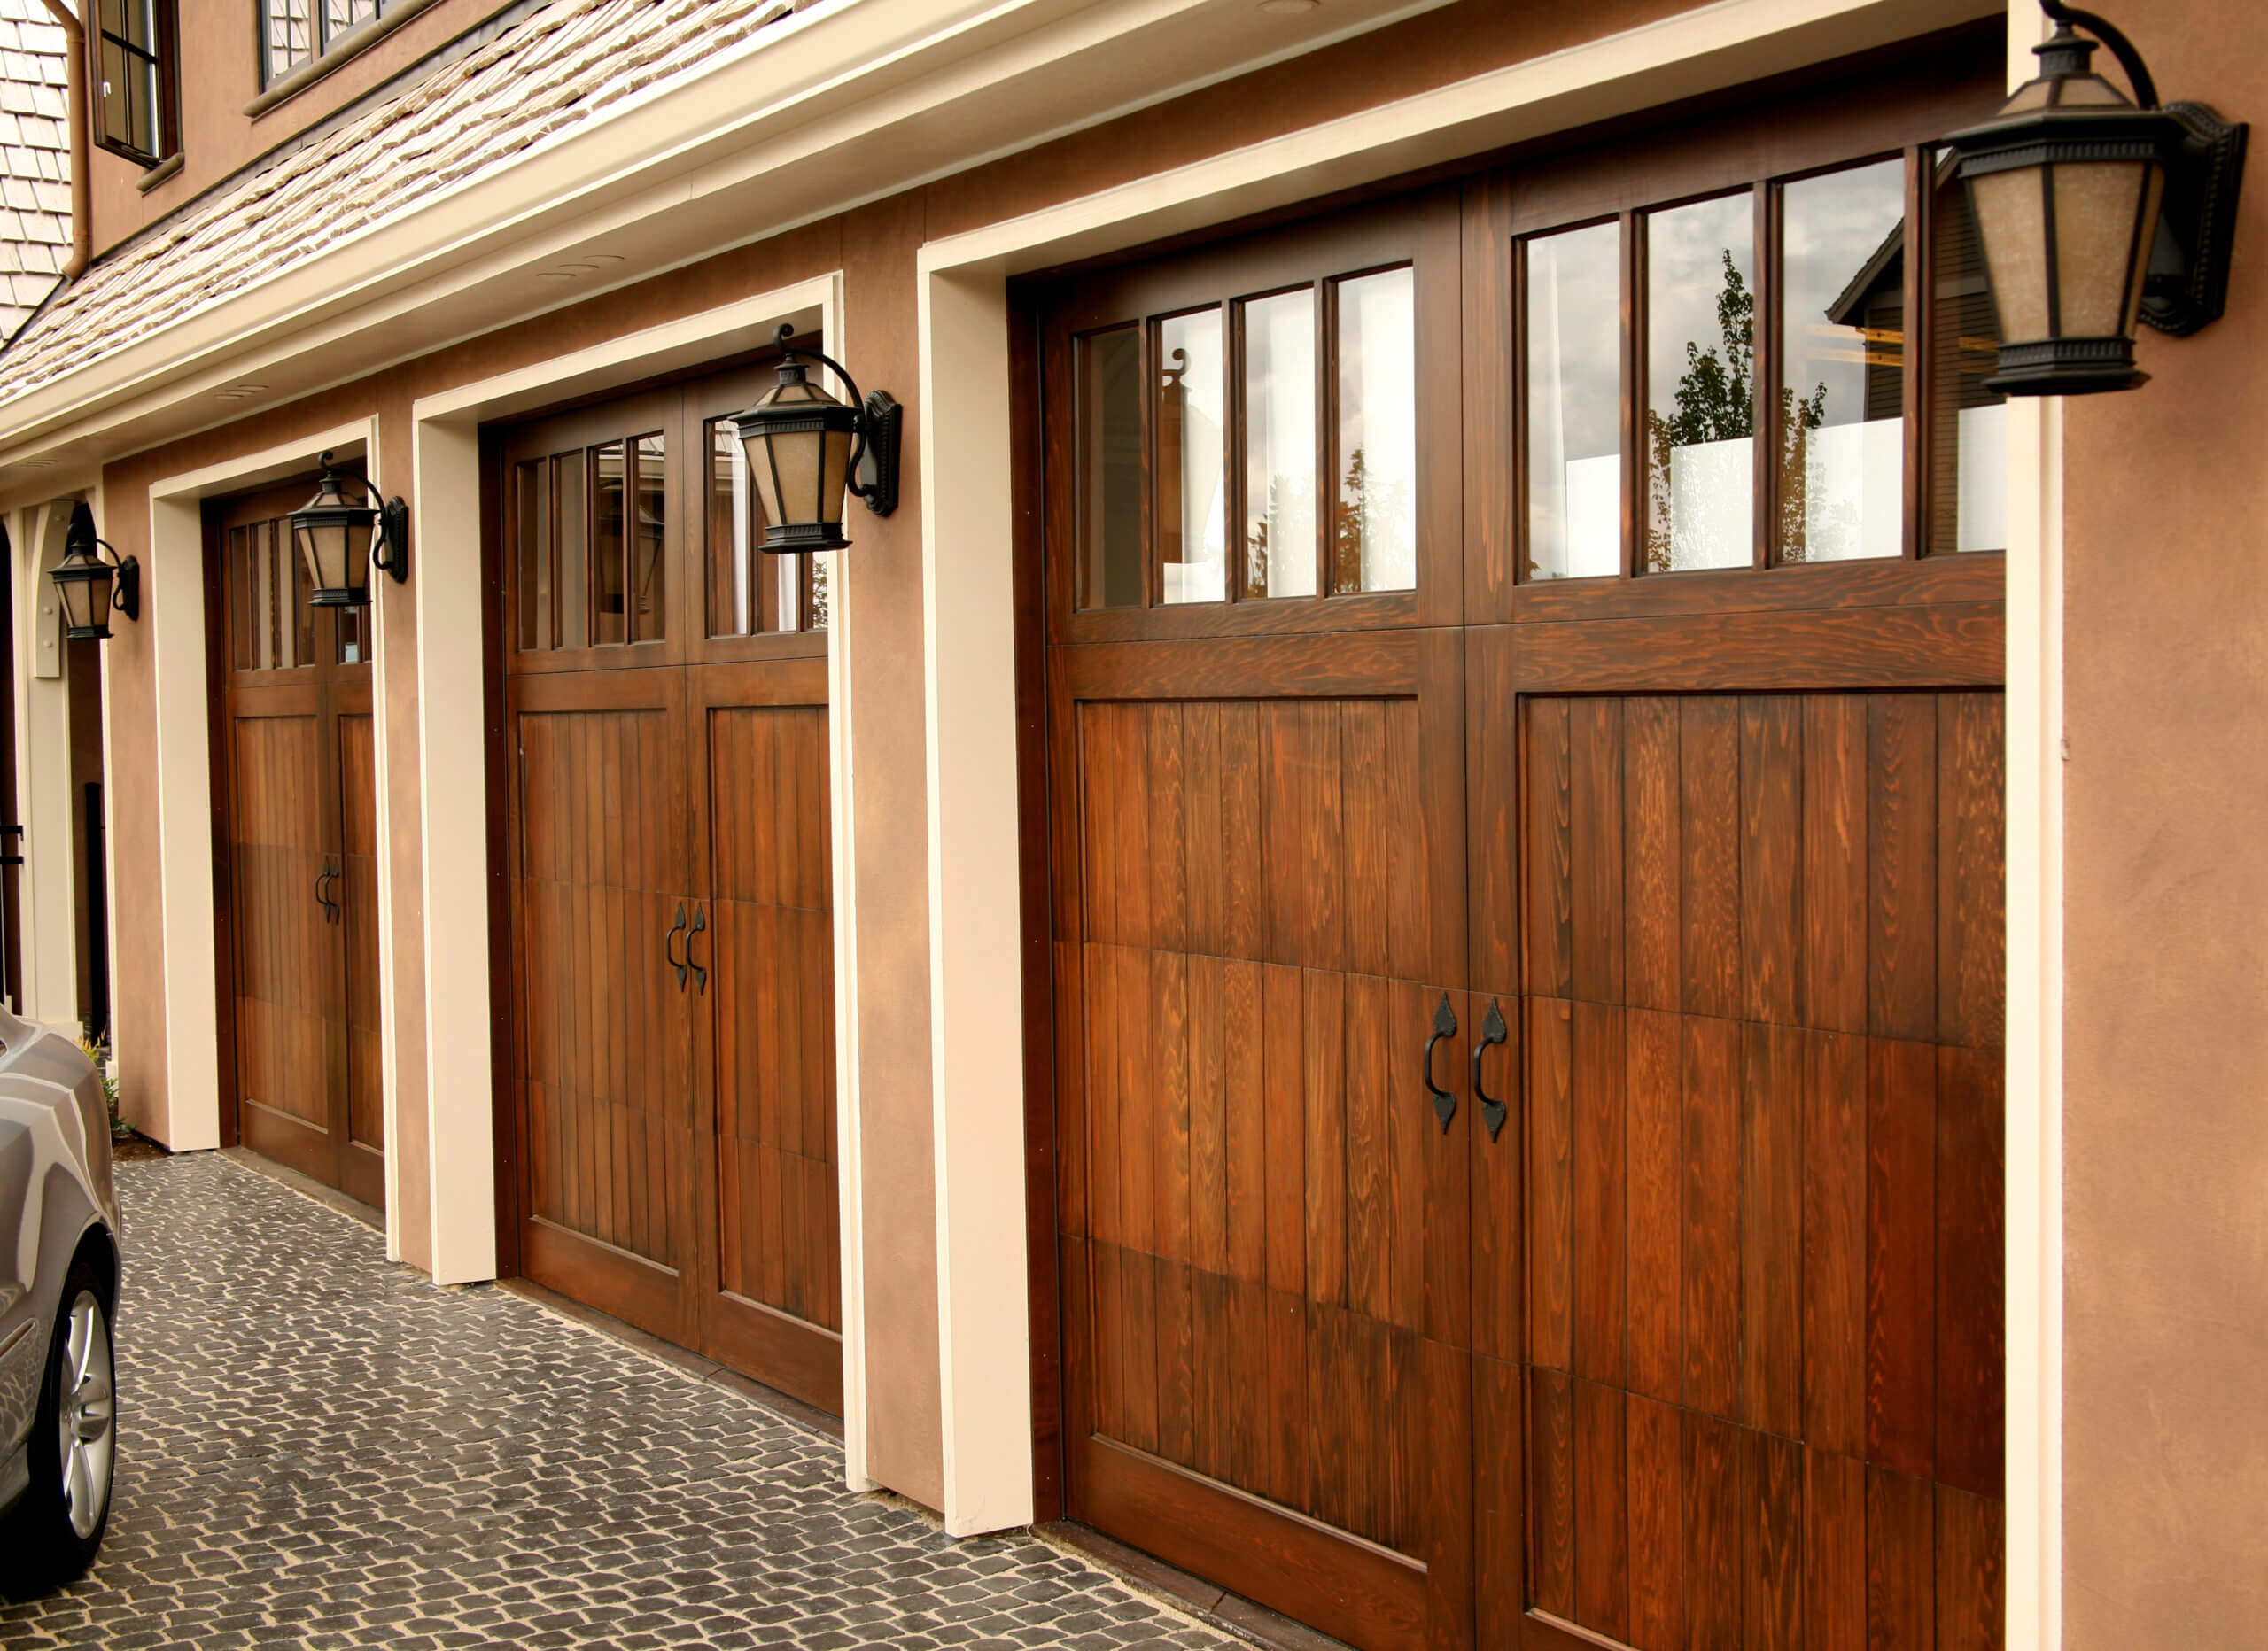 Choosing the Right Garage Door Material for You